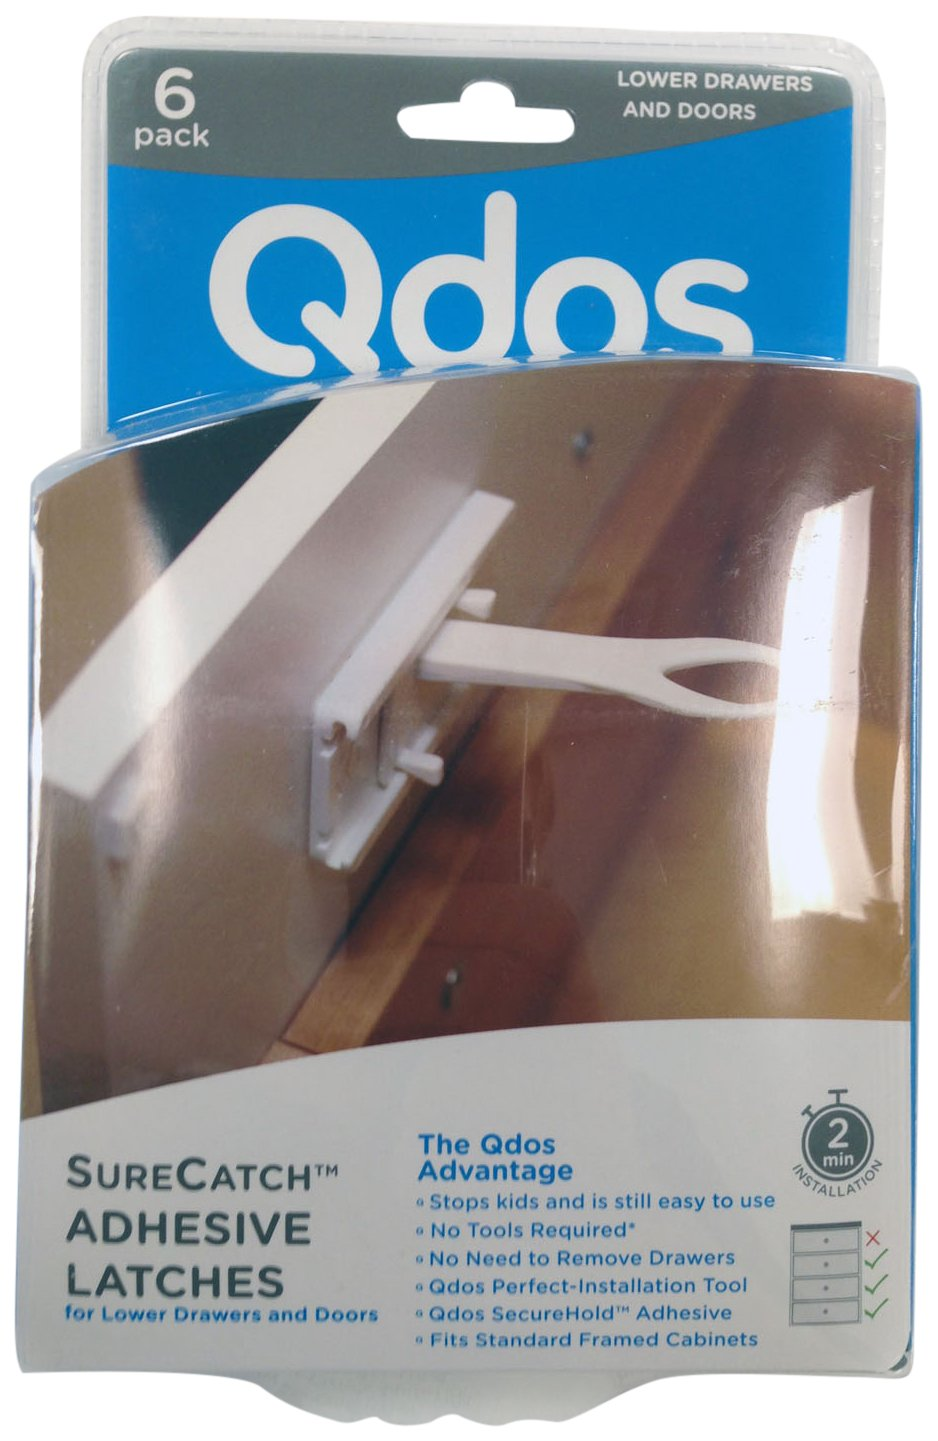 QDOS SURECATCH Adhesive Lower Drawer Latches - No Removing Drawers! No Drilling! No Tools Required! Fits Right The First Time! | Only for Framed Cabinet Lower Drawers and Doors | 6 Pack | White